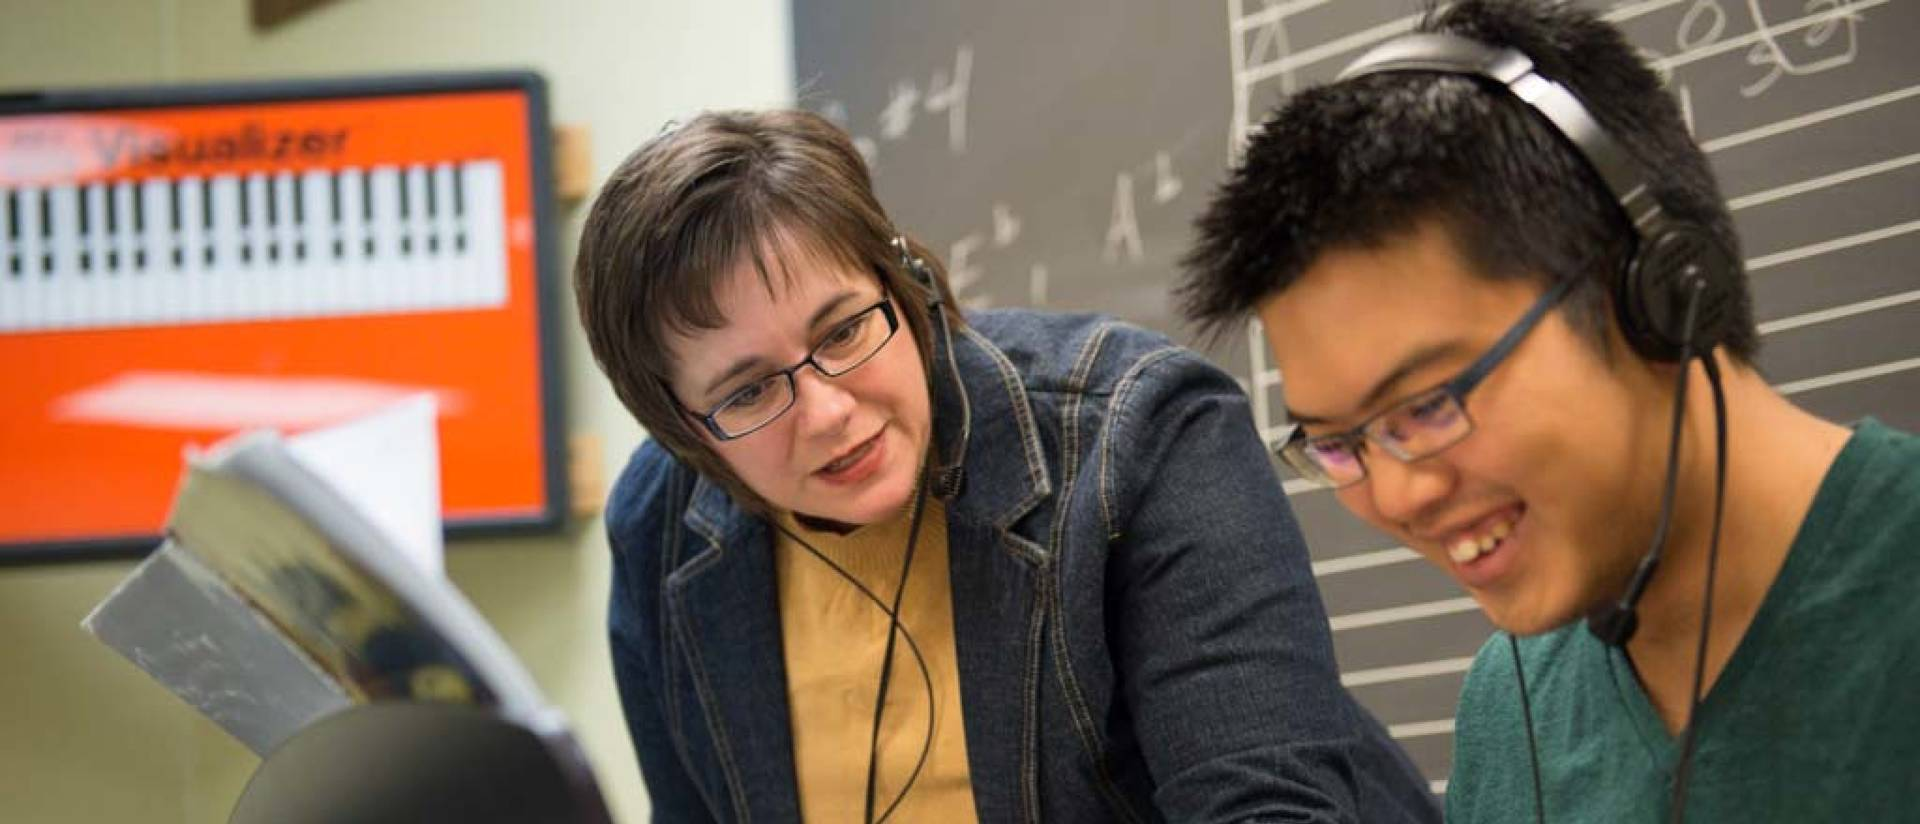 UW-Eau Claire music major student collaborates with faculty on the piano.